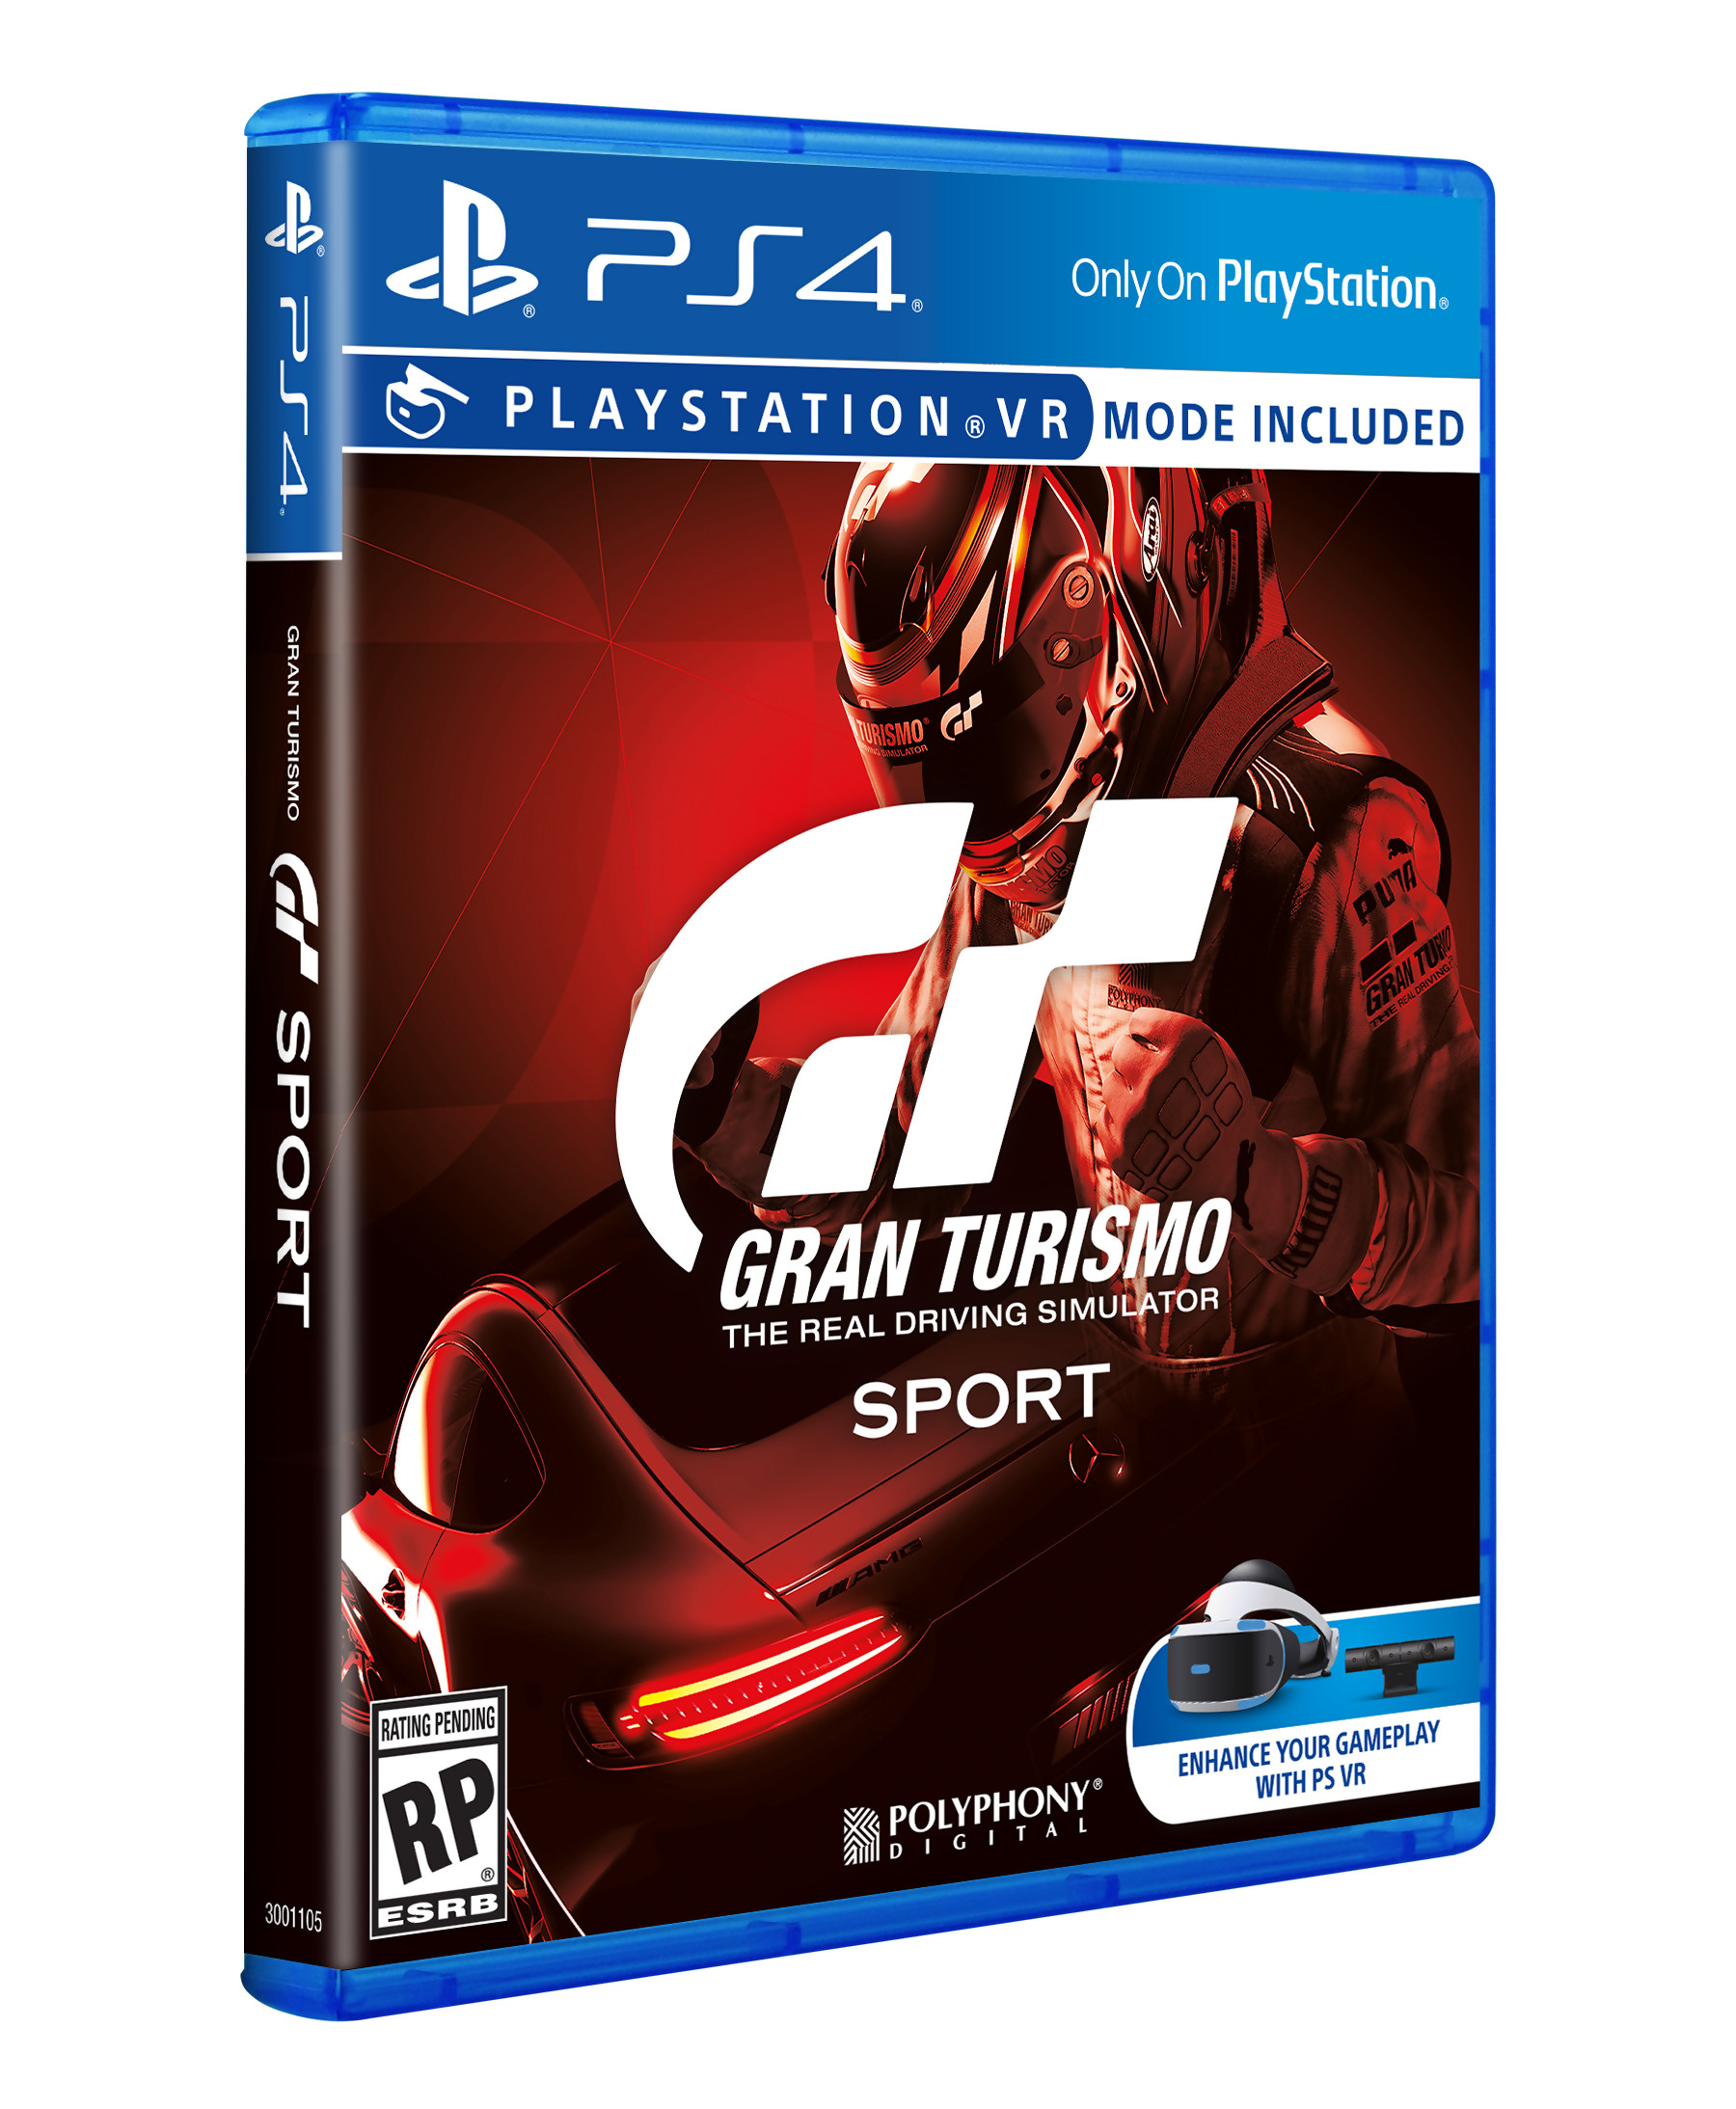 unboxing gt sport edition collector rouroune. Black Bedroom Furniture Sets. Home Design Ideas